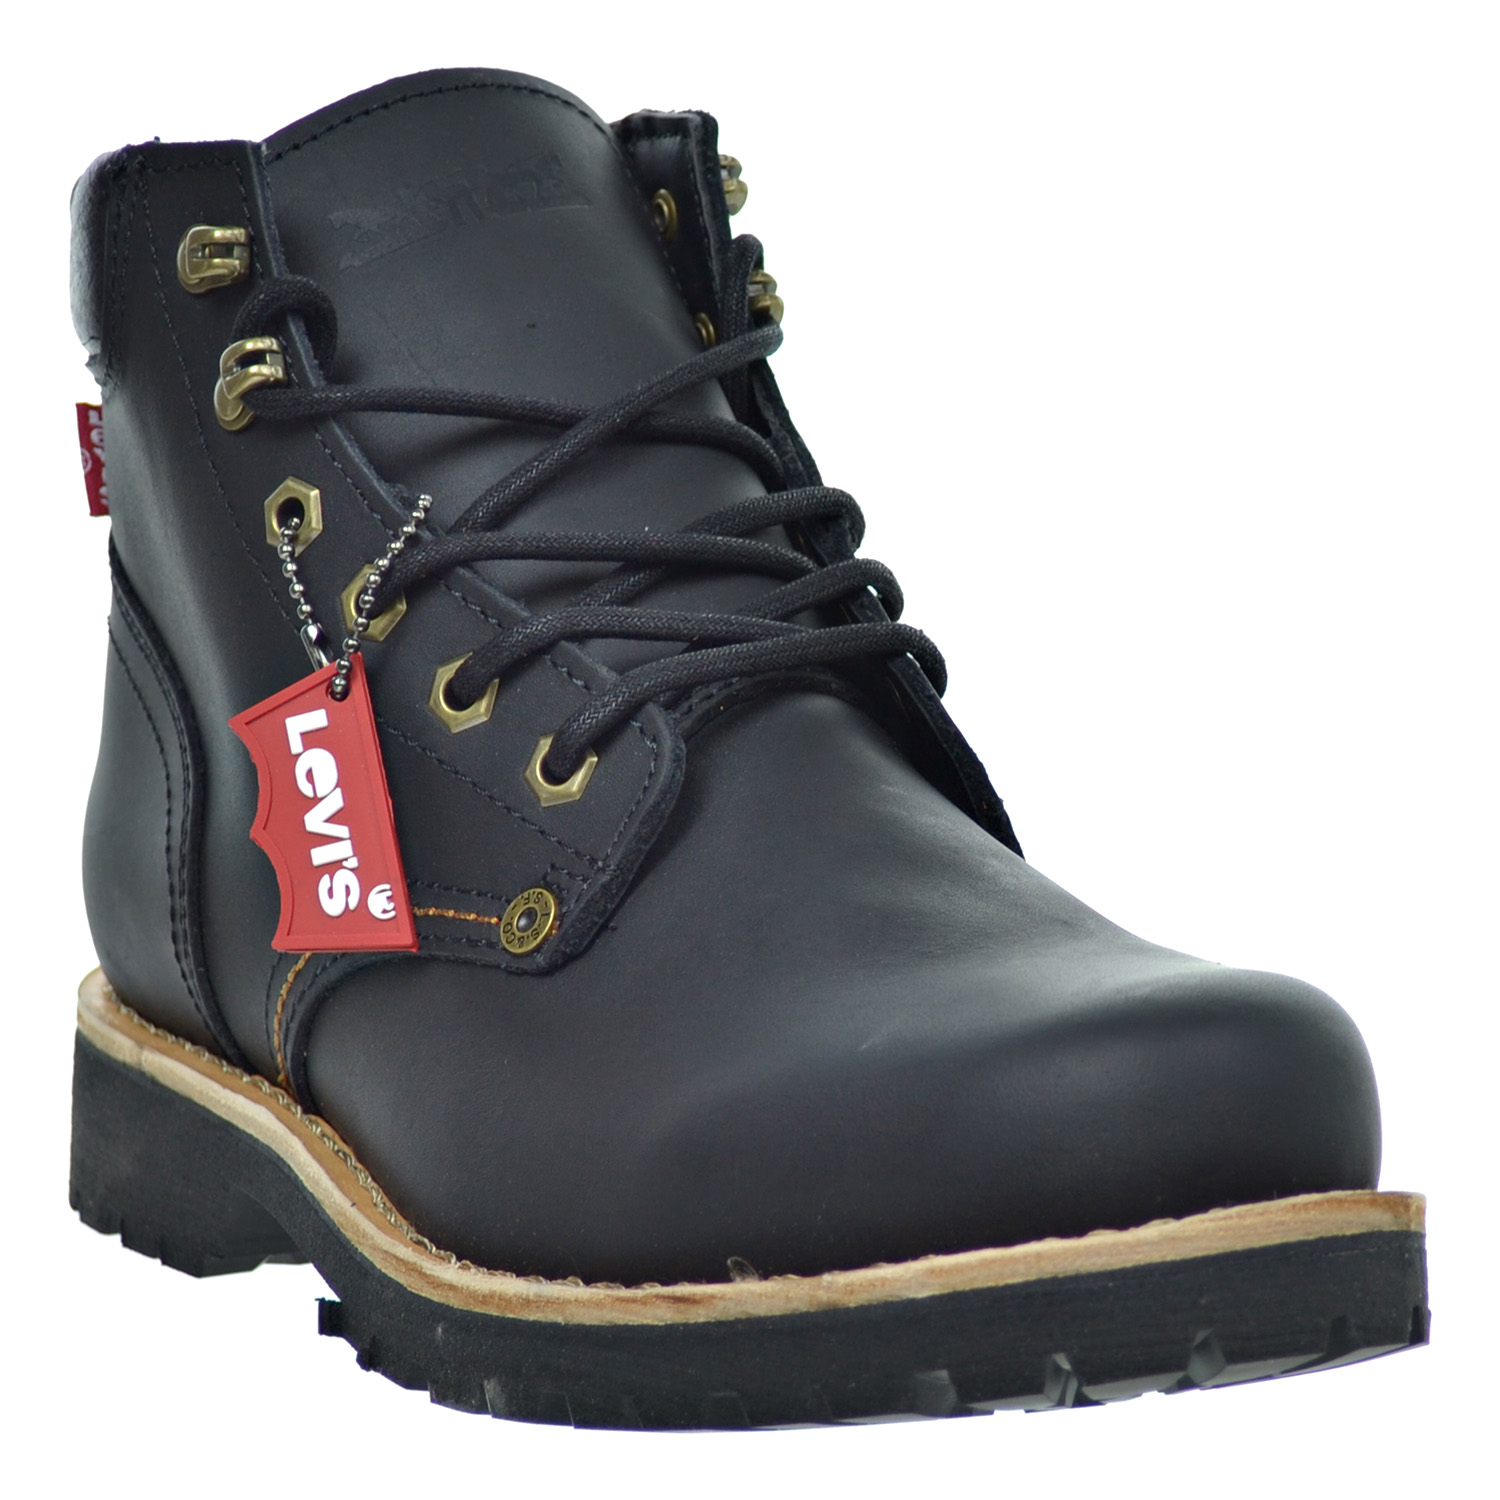 levis compass leather s boots black 516992 01a ebay